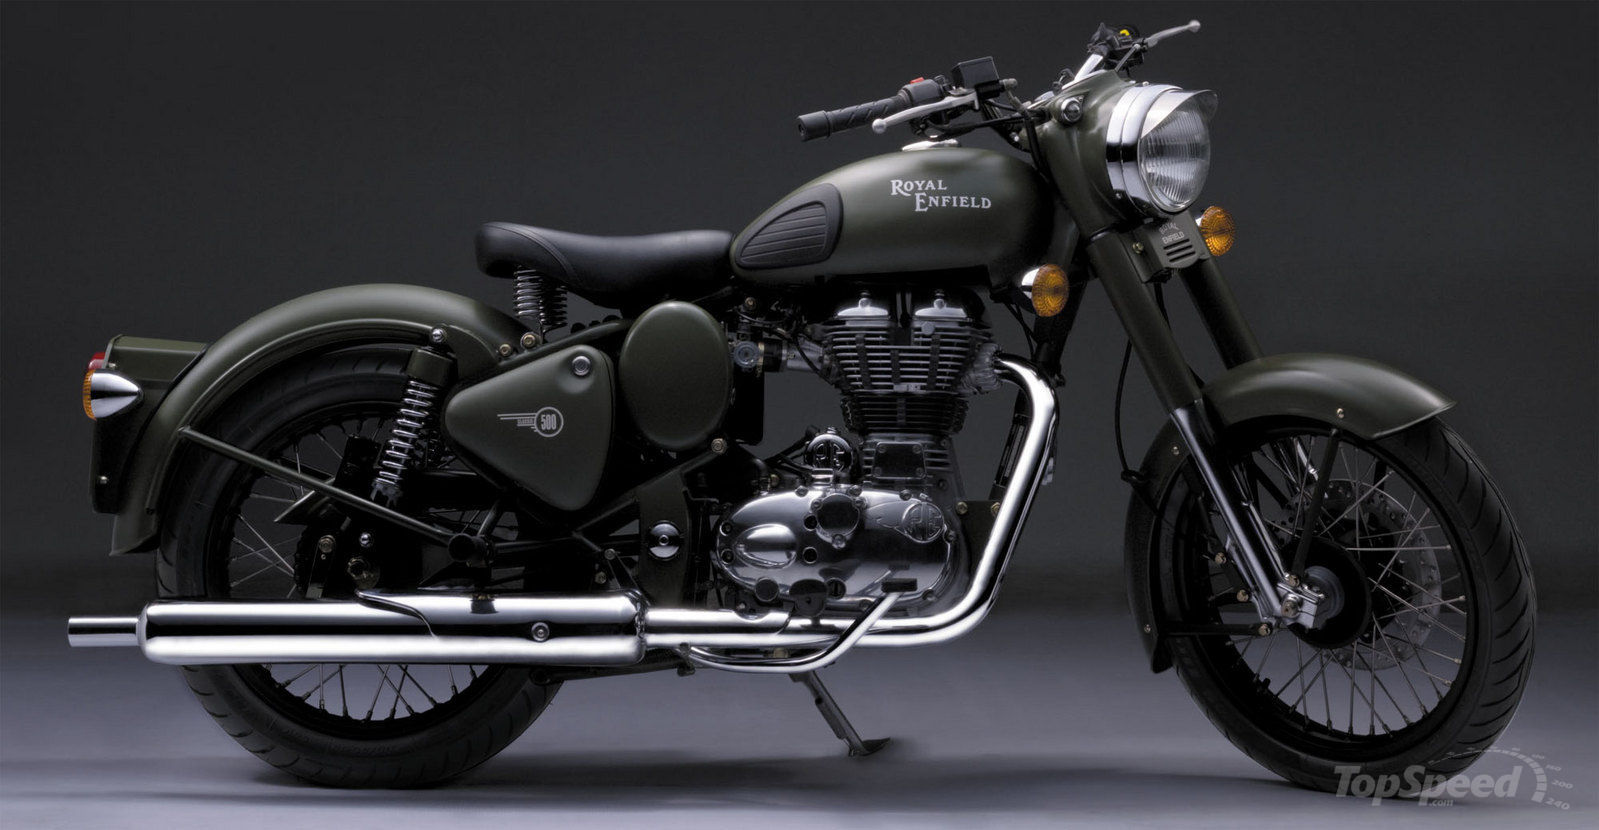 2004 Royal Enfield Bullet 500 Army Pics Specs And Information